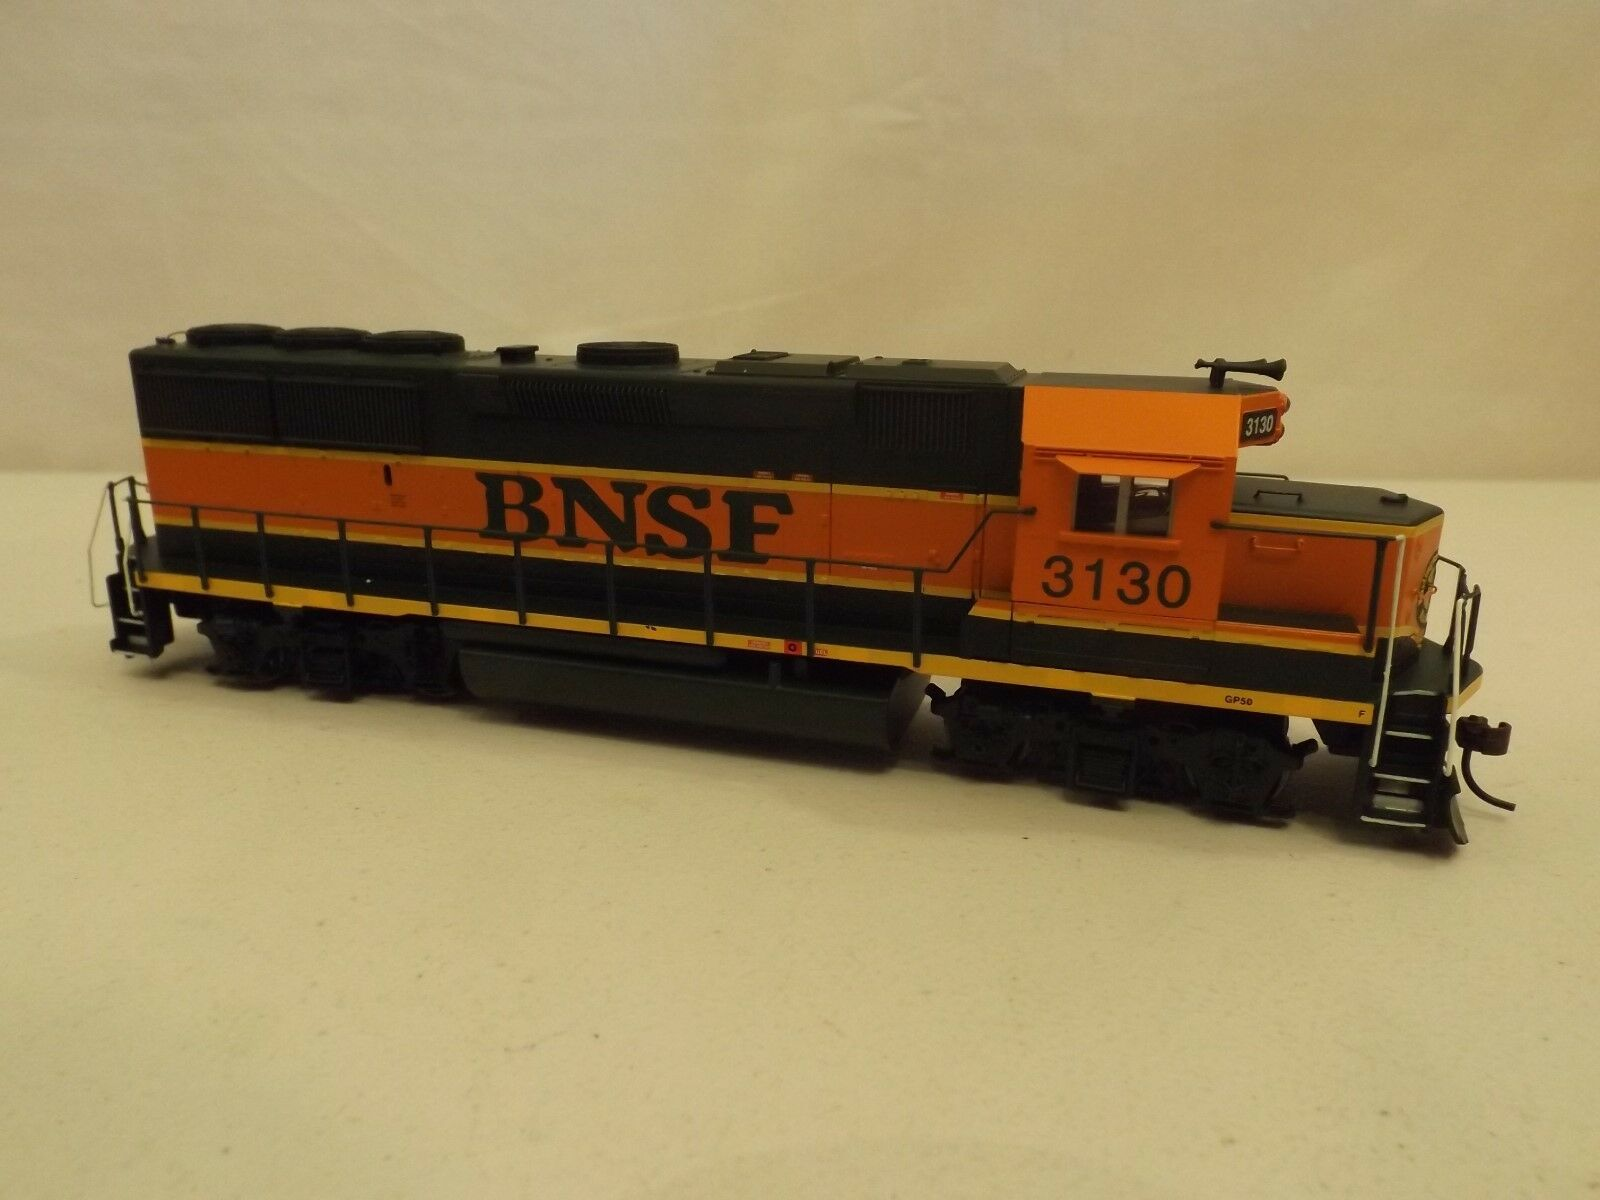 HO Athearn BNSF GP50 diesel engine in original box